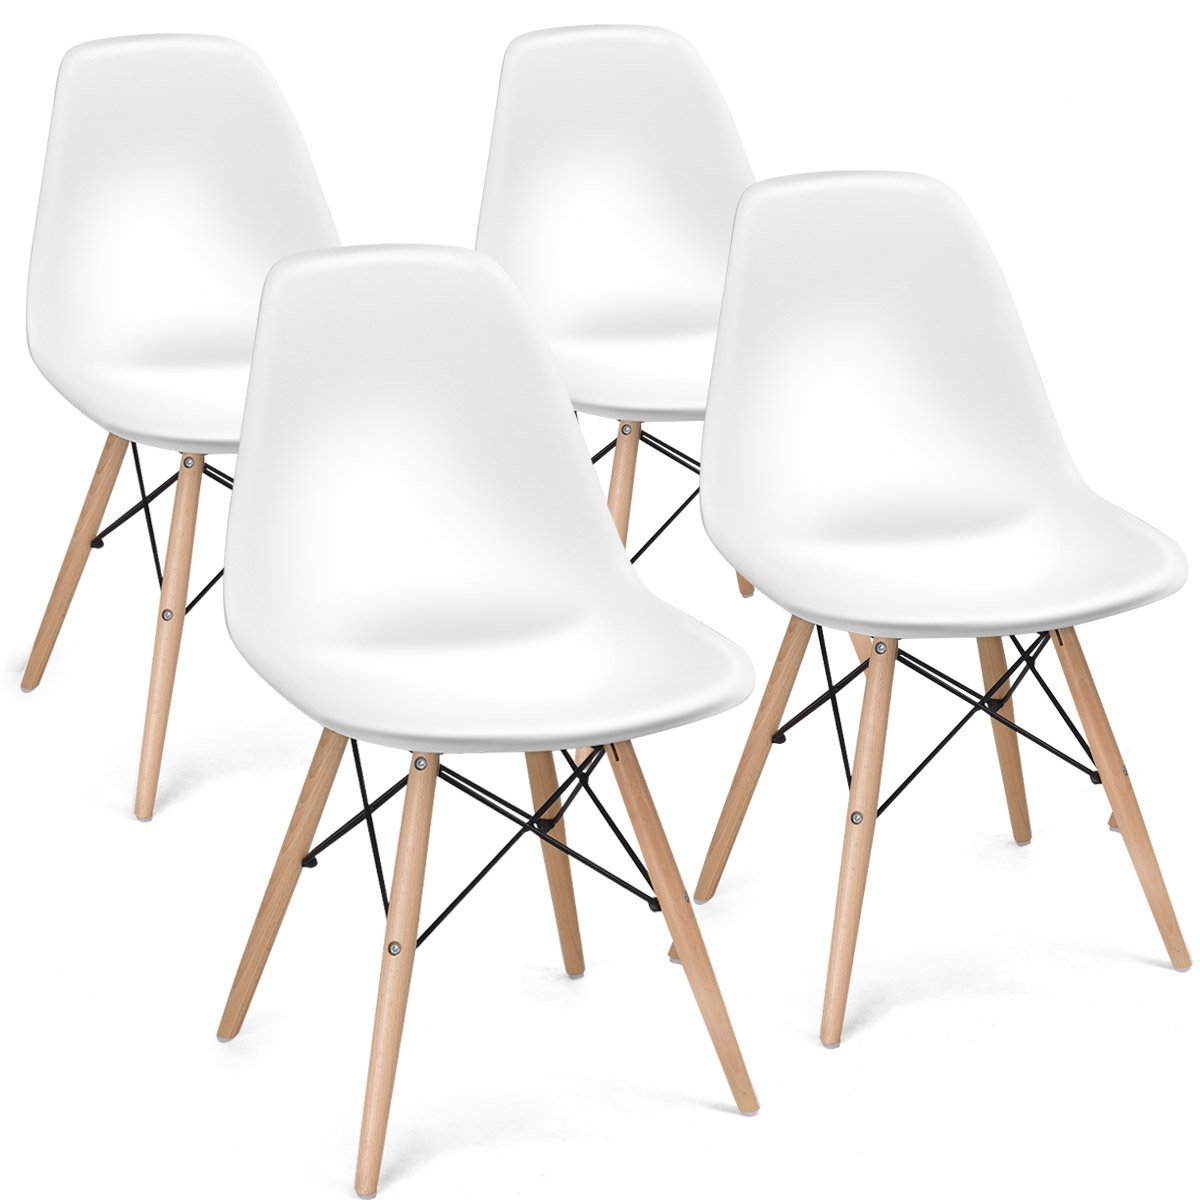 Giantex Set of 4 Mid Century Modern Style DSW Chair Wood Assembled Legs for Kitchen, Dining, Bedroom, Living Room, White by Giantex